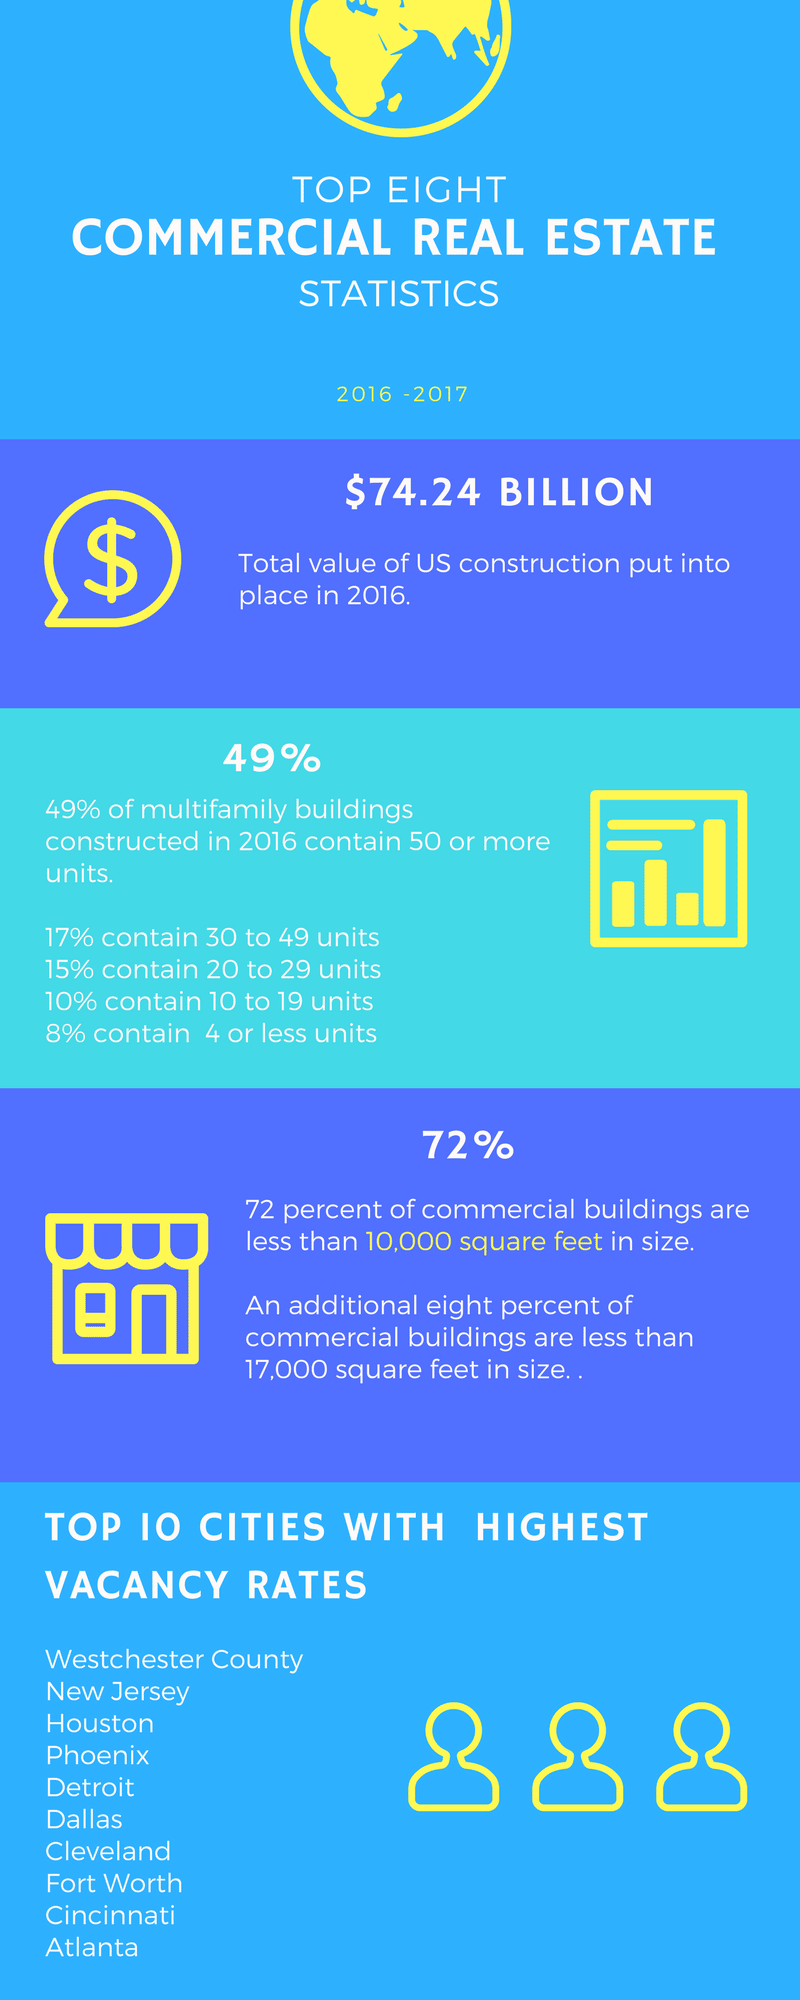 commercial real estate stats for 2016-2017 - part 1